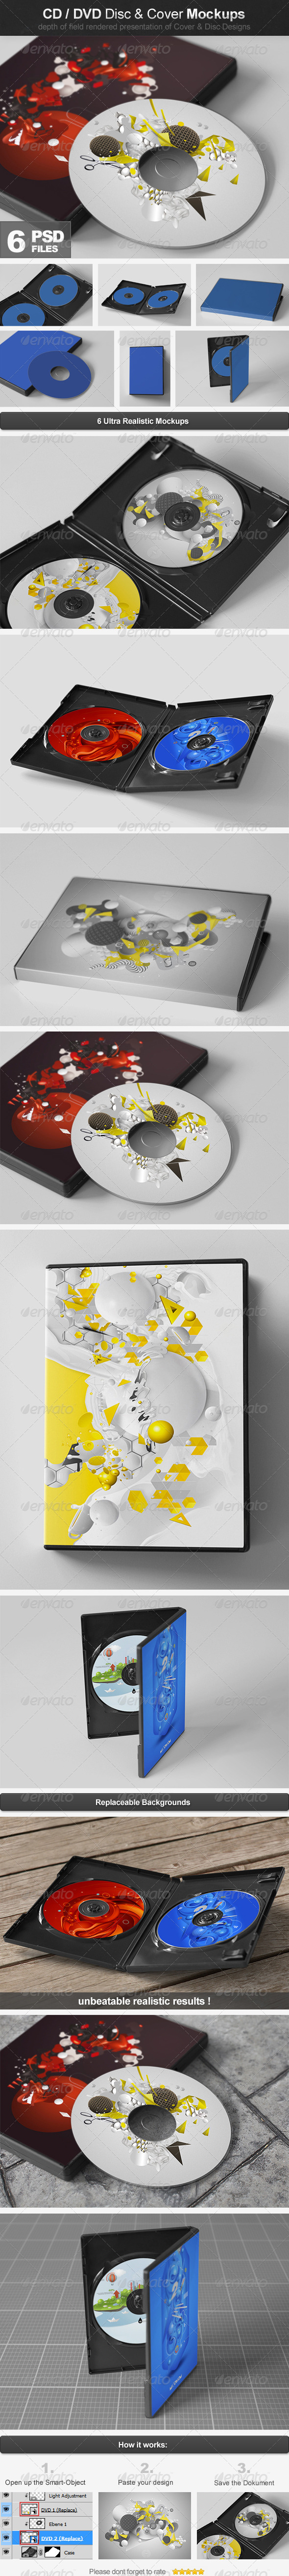 GraphicRiver CD DVD Disc & Cover Mockups 5074979